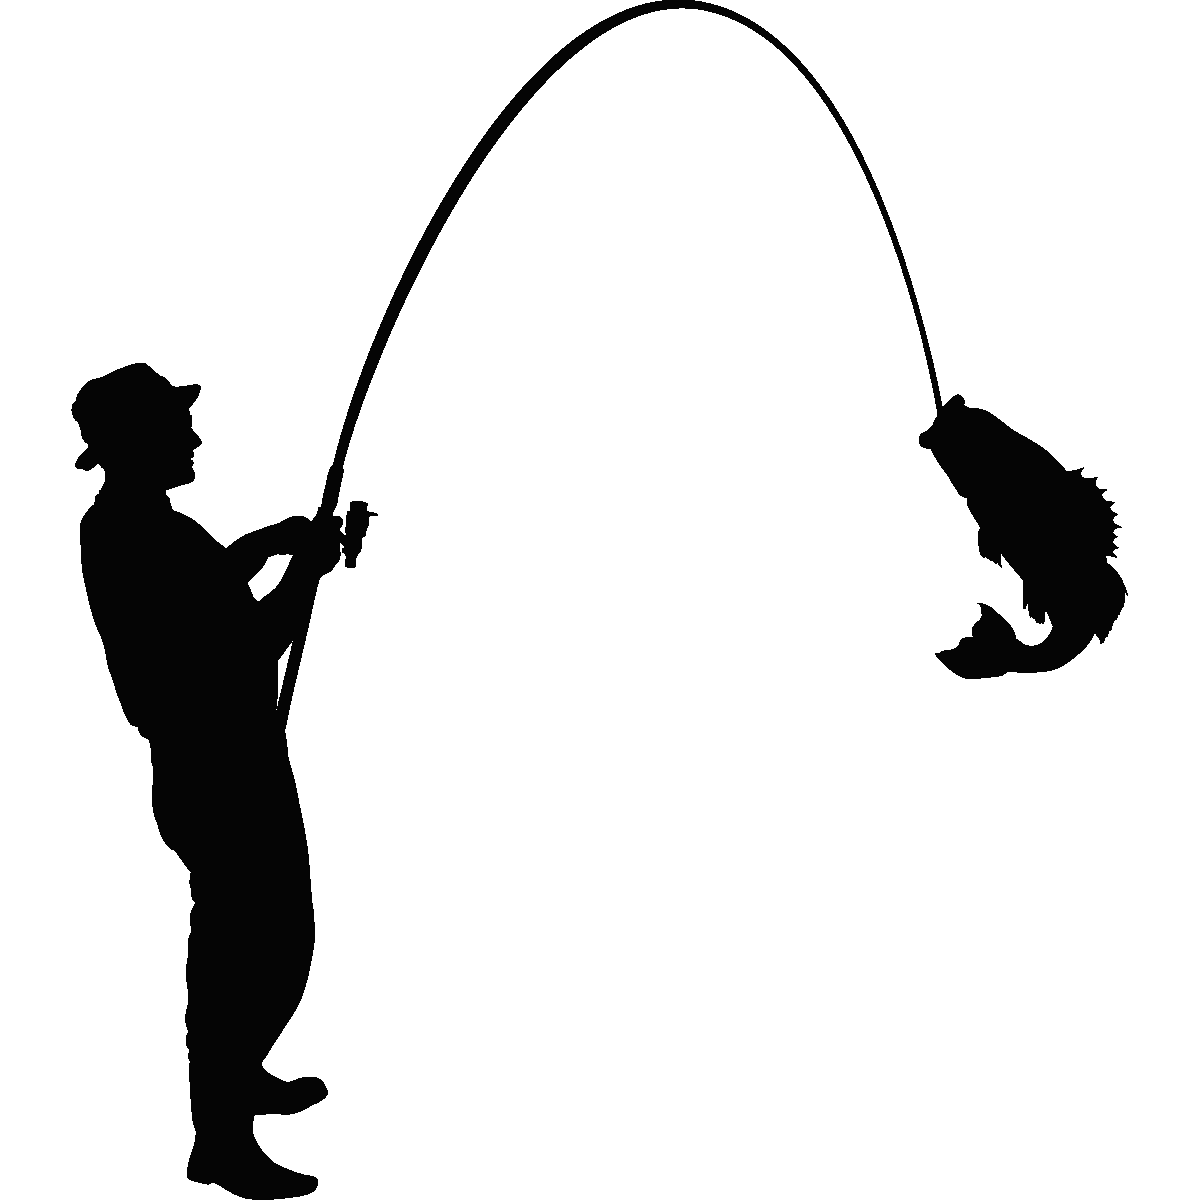 Fisherman silhouette png - photo#1